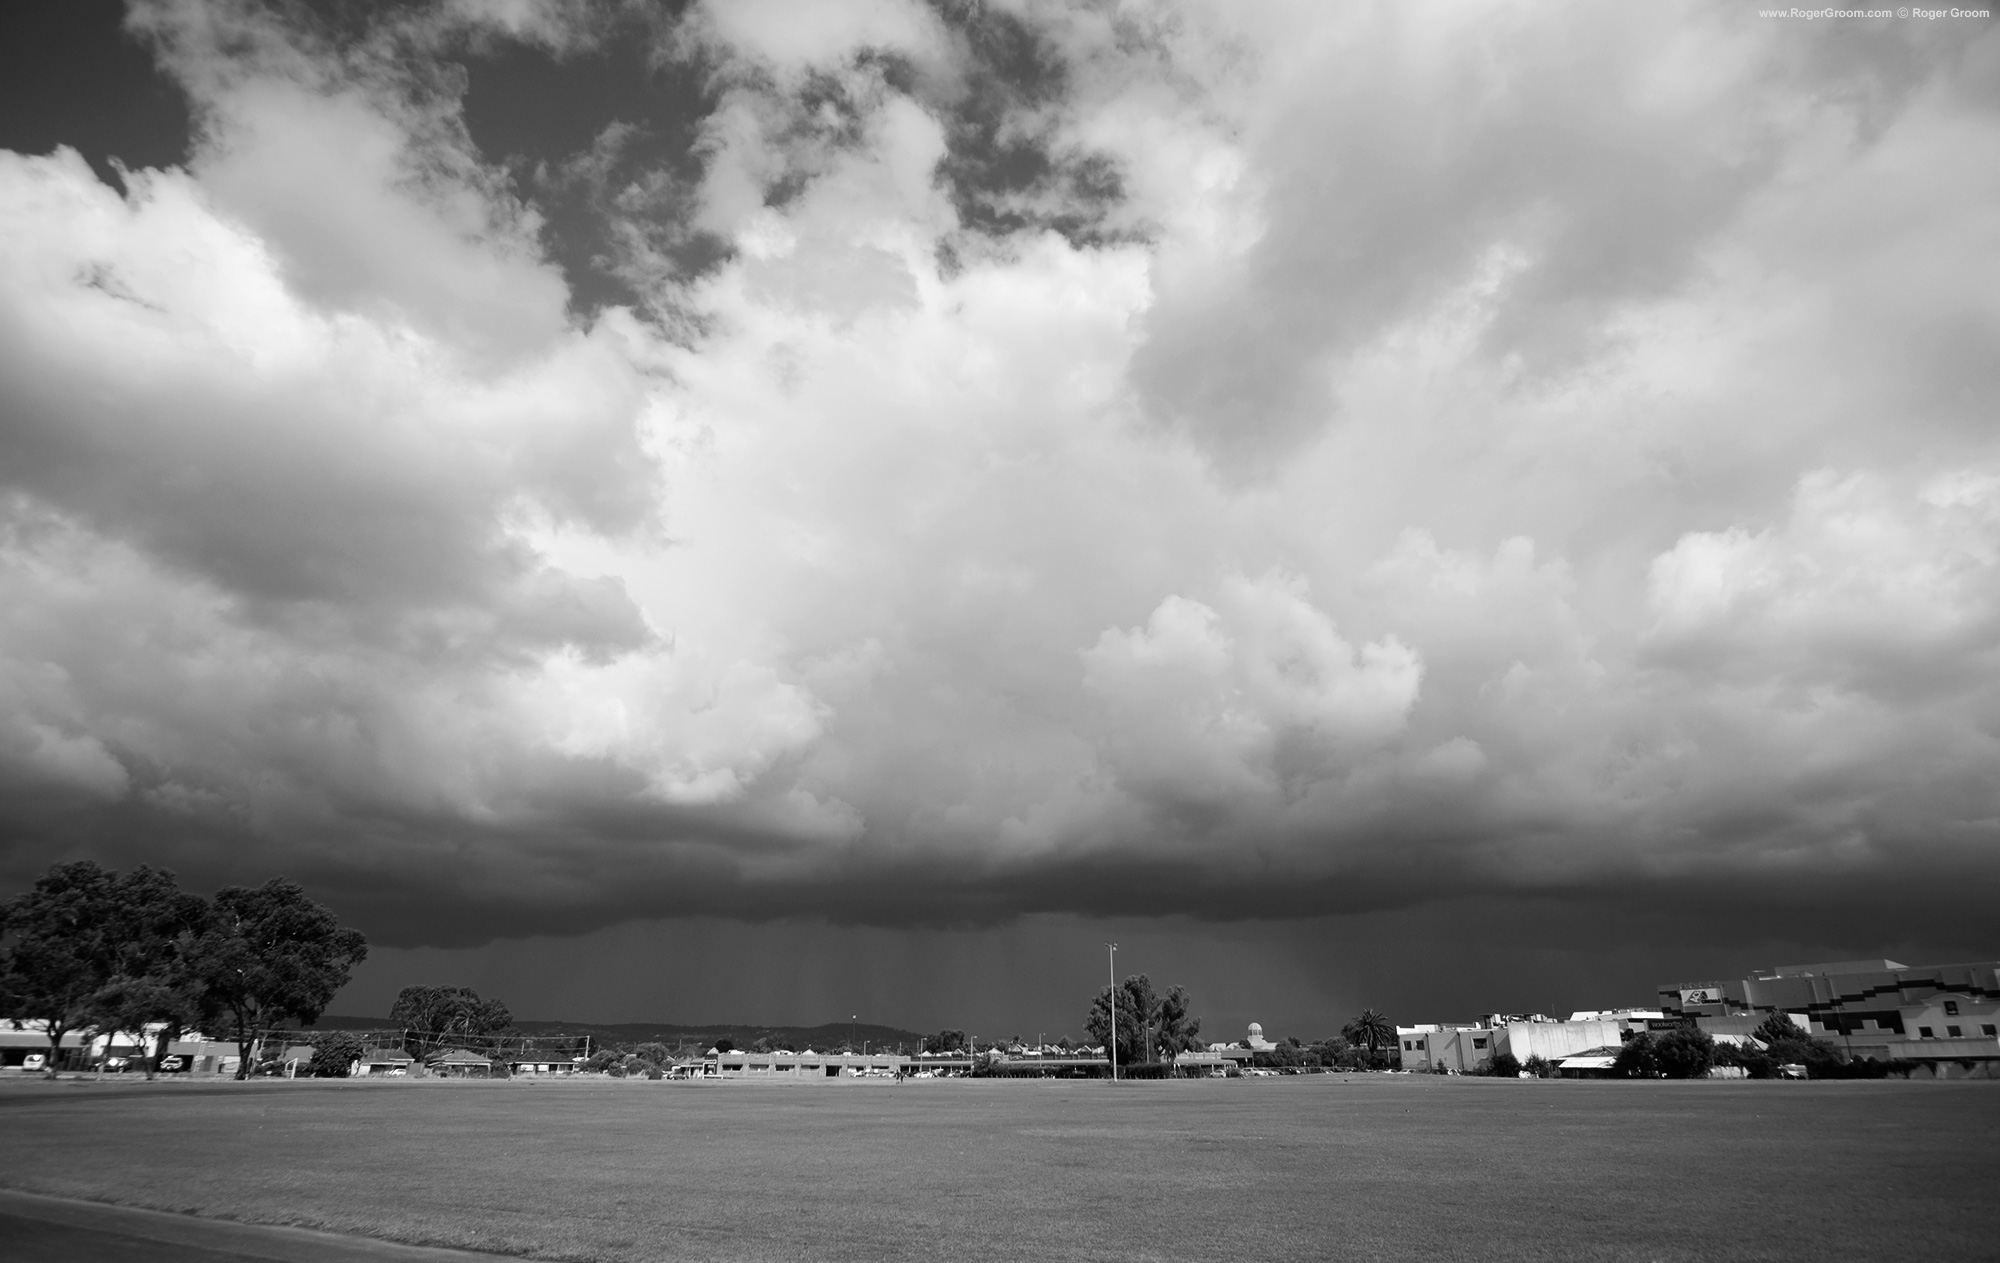 Storm clouds over Midland Oval, Western Australia.